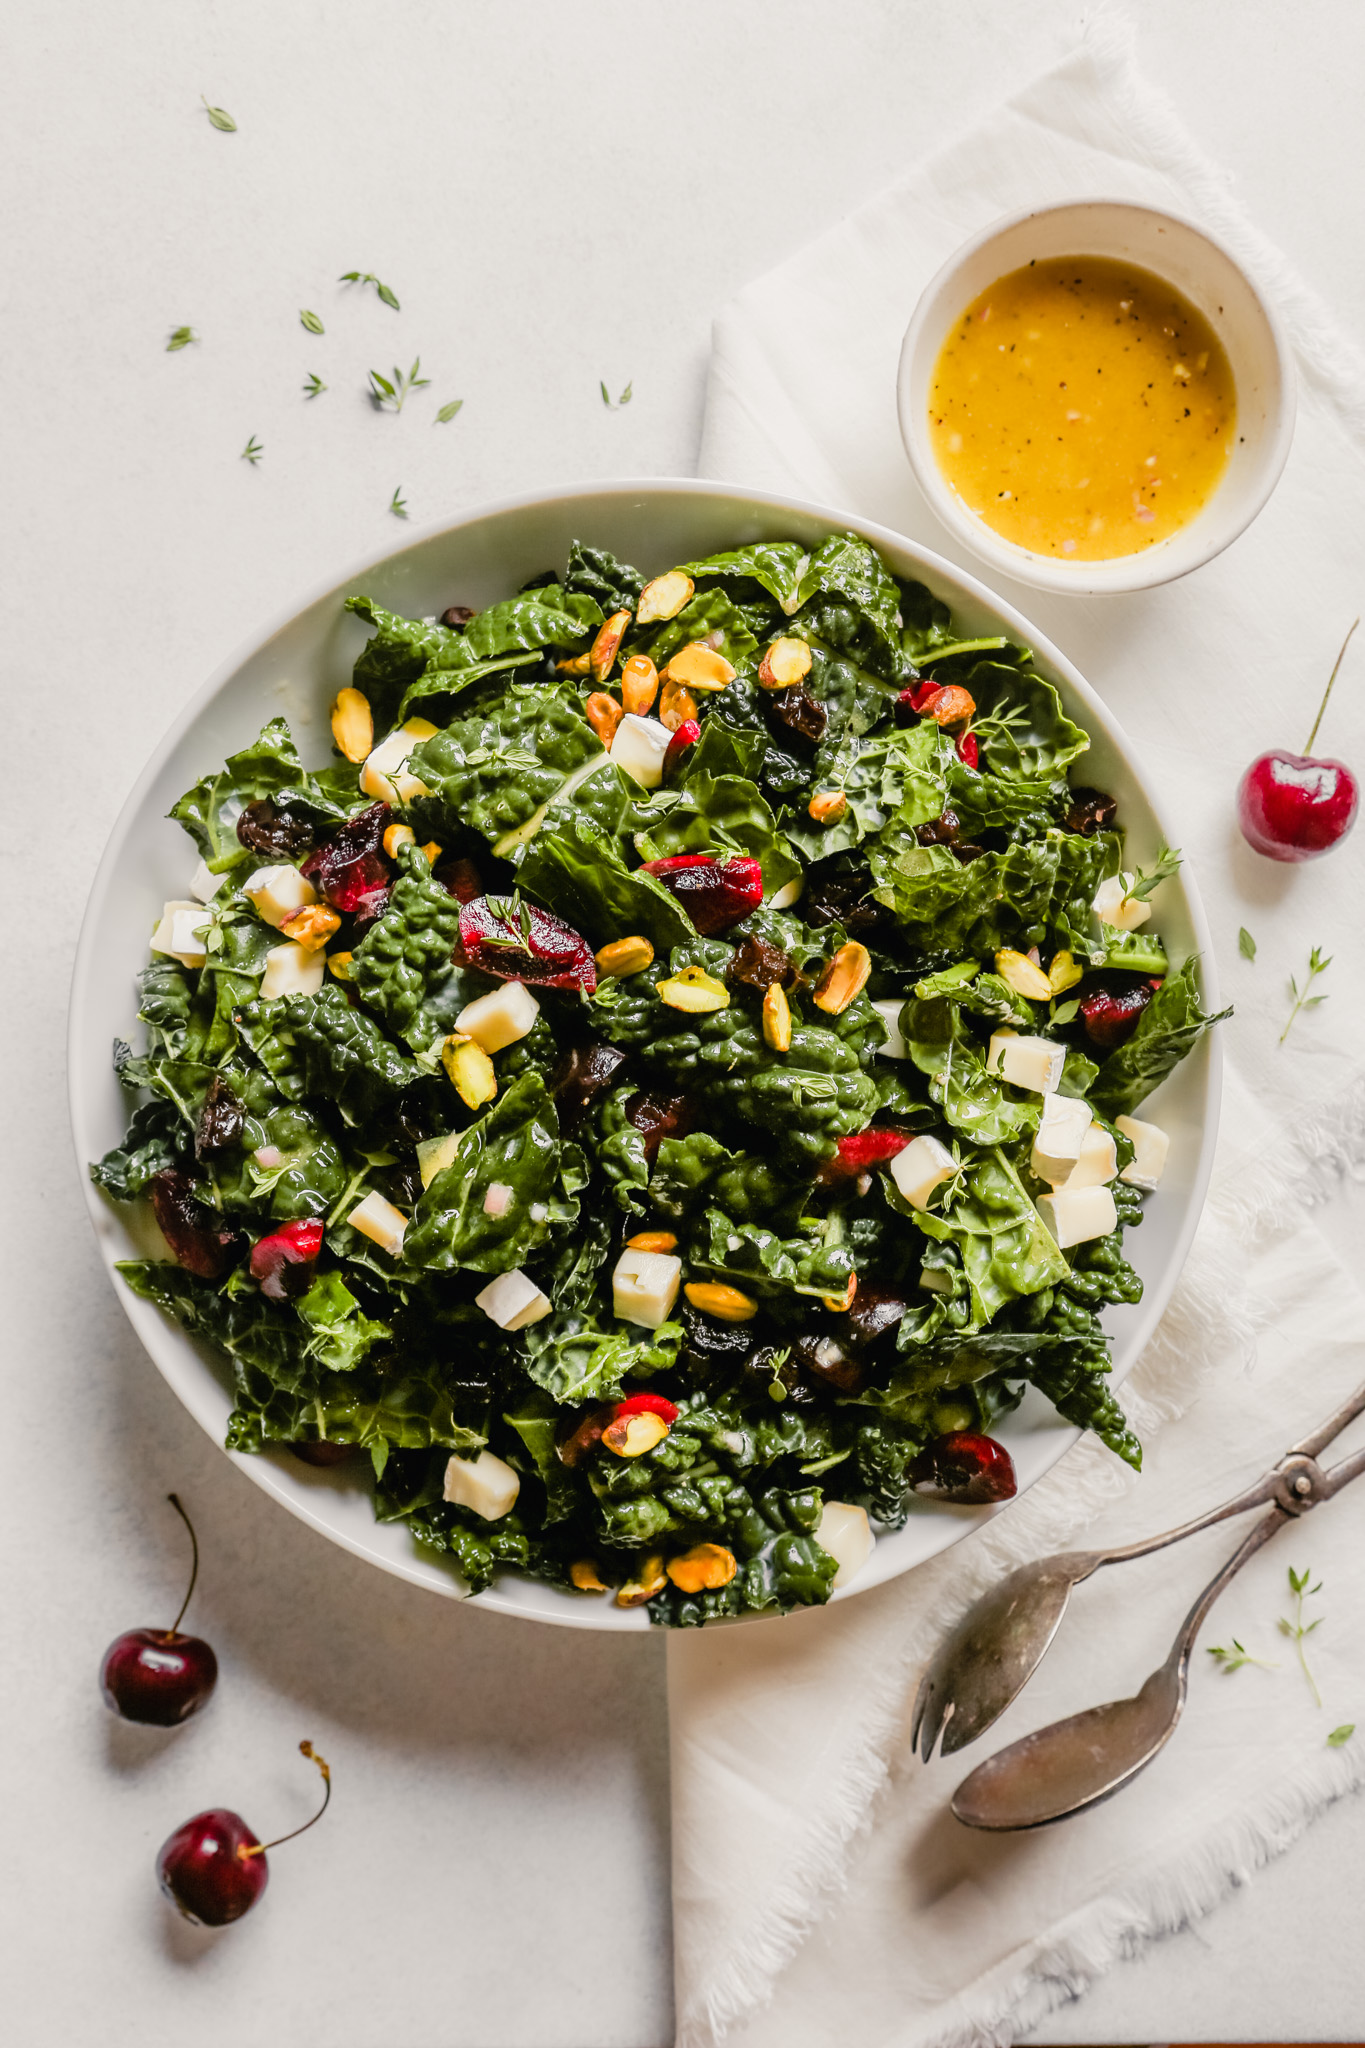 Photograph of a kale salad with cherries and pistachios in a white bowl on a blue table